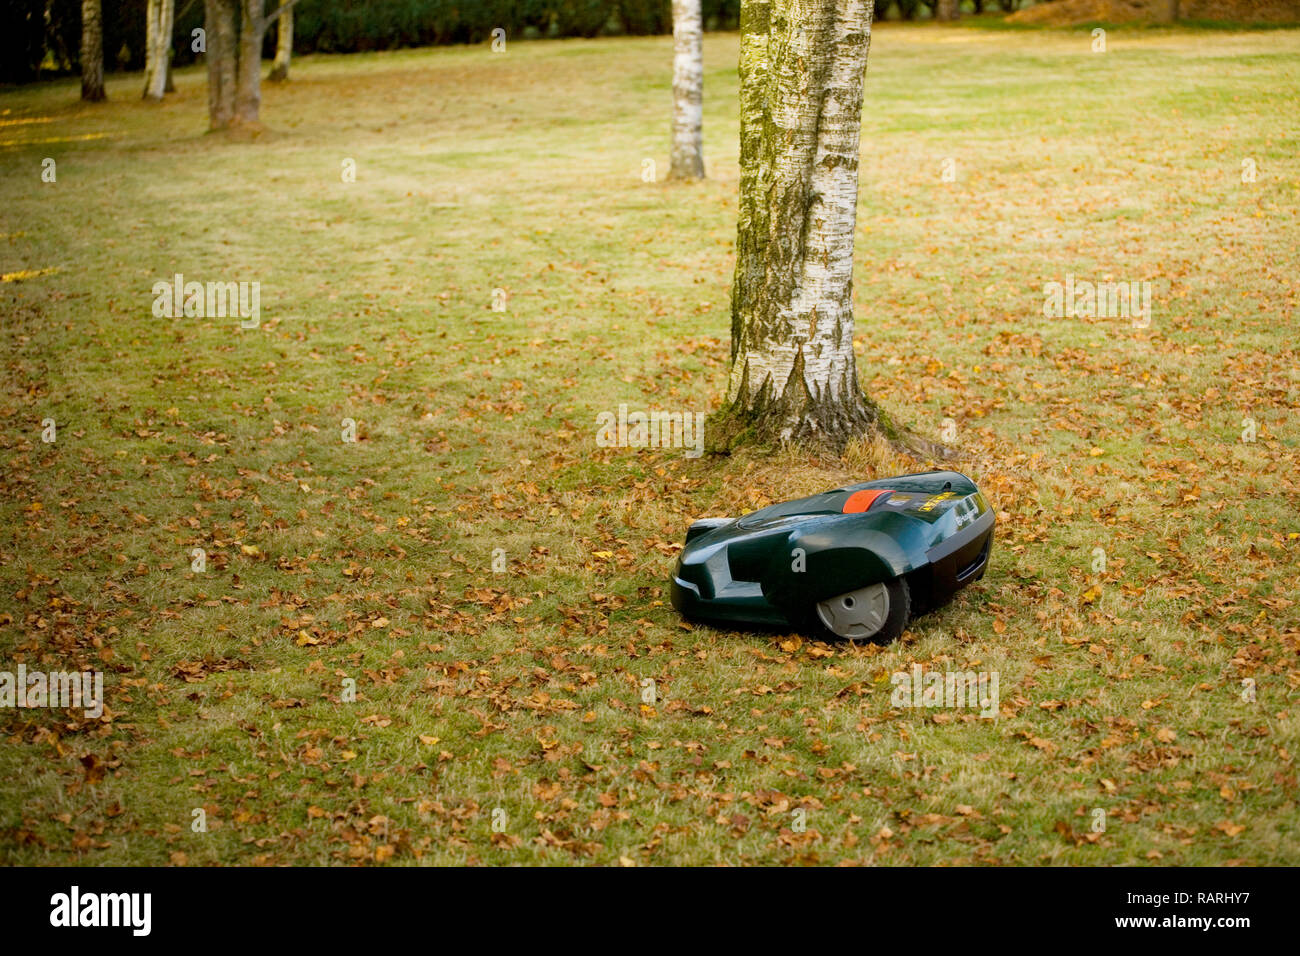 Automatic robot lawn mower cutting grass near trees and autumn leaves - Stock Image